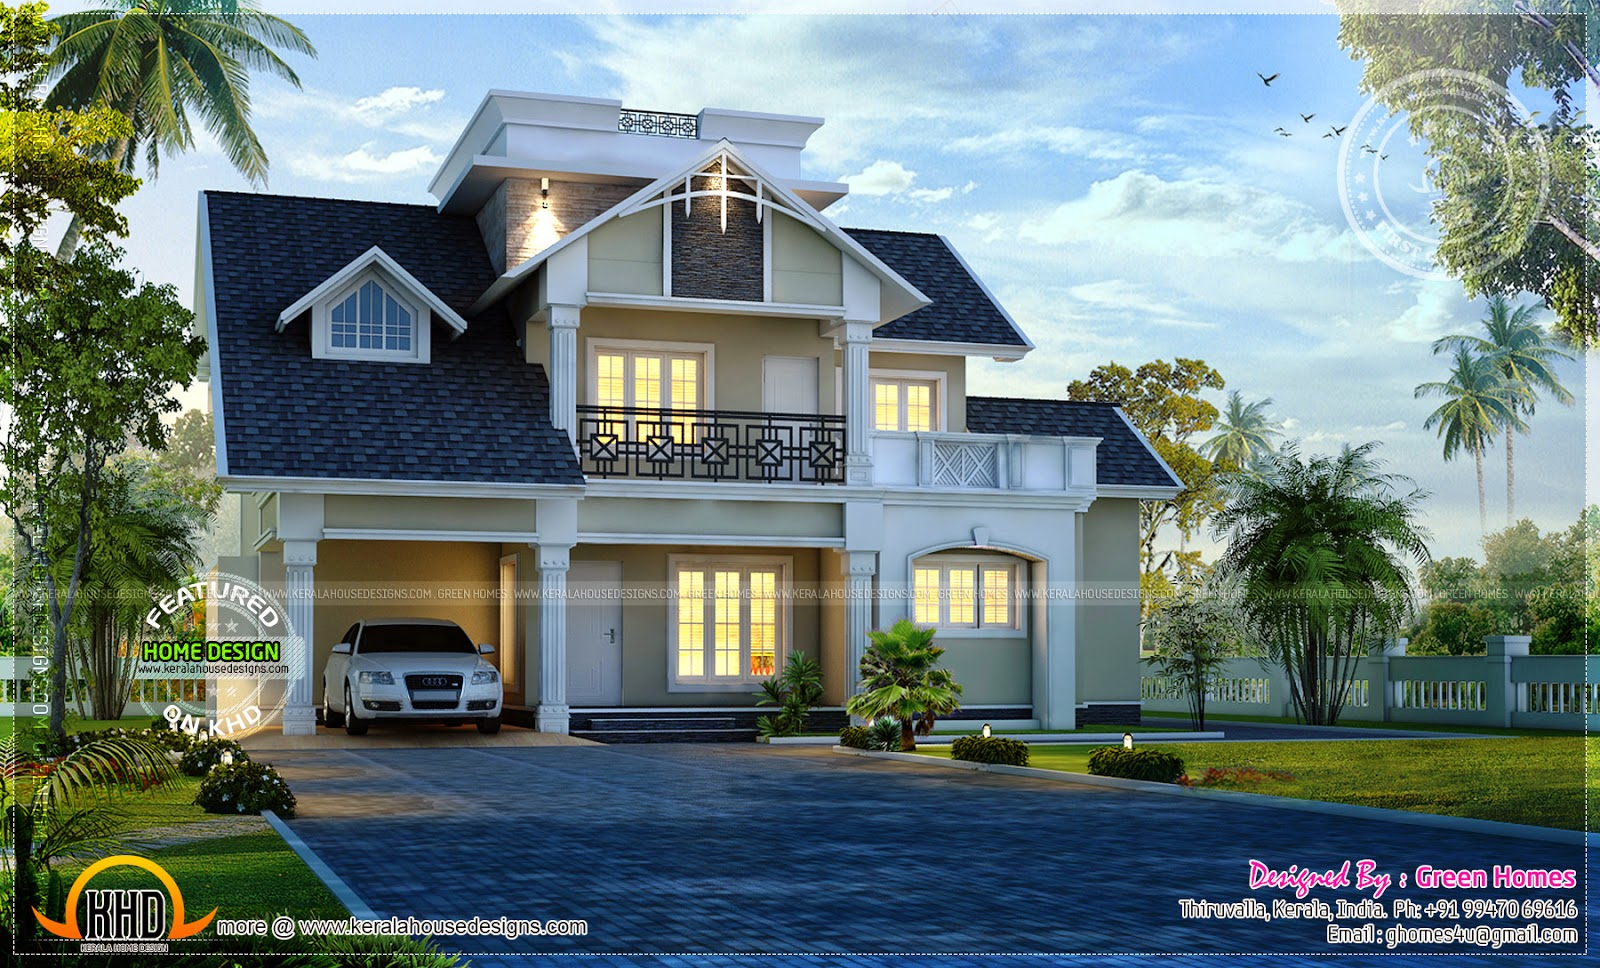 Awesome modern house exterior kerala home design and for Awesome home plans